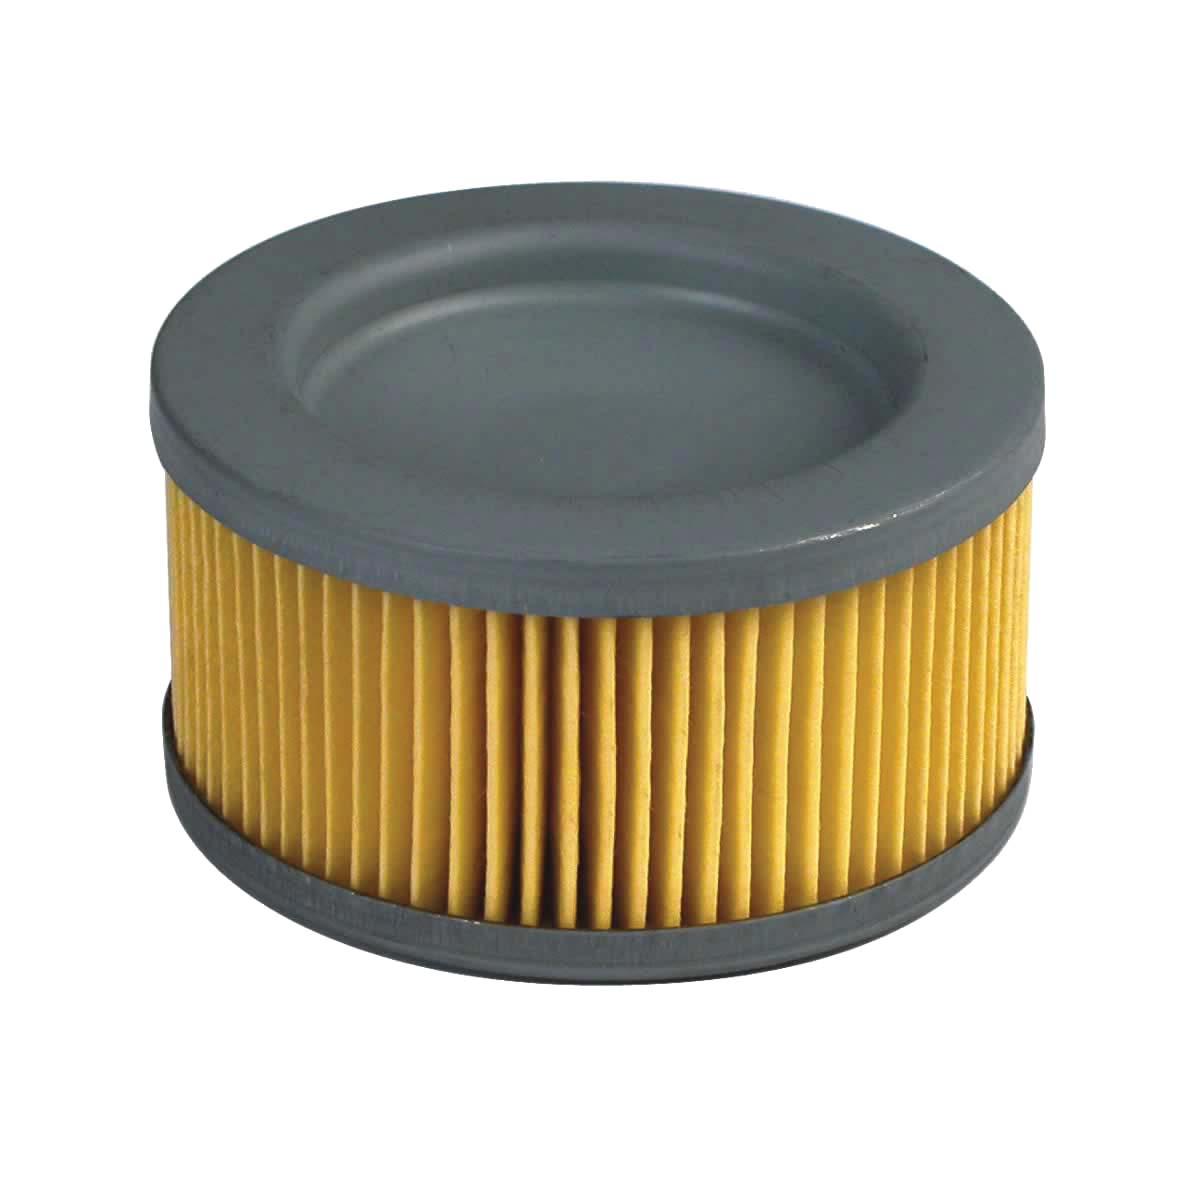 Air Filters For Blowers : Air filter for stihl